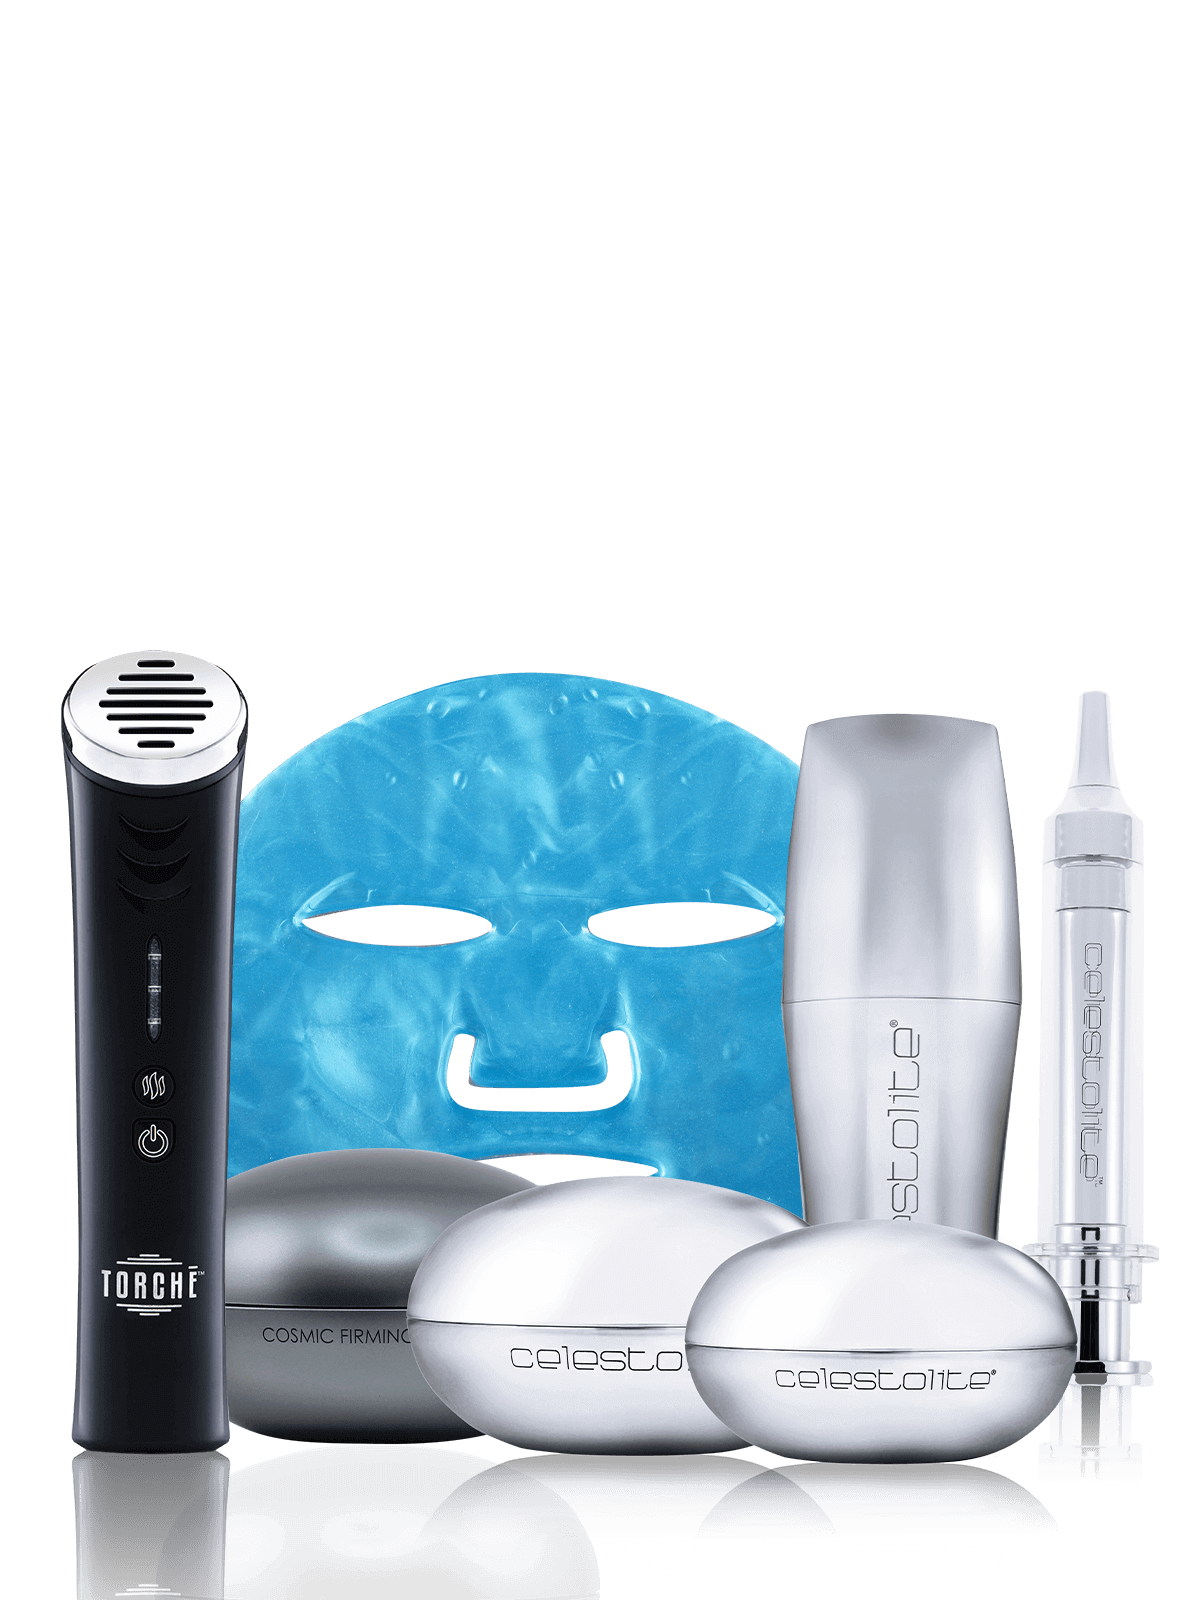 Cosmic Collection + Renewal blue mask + Black Torche